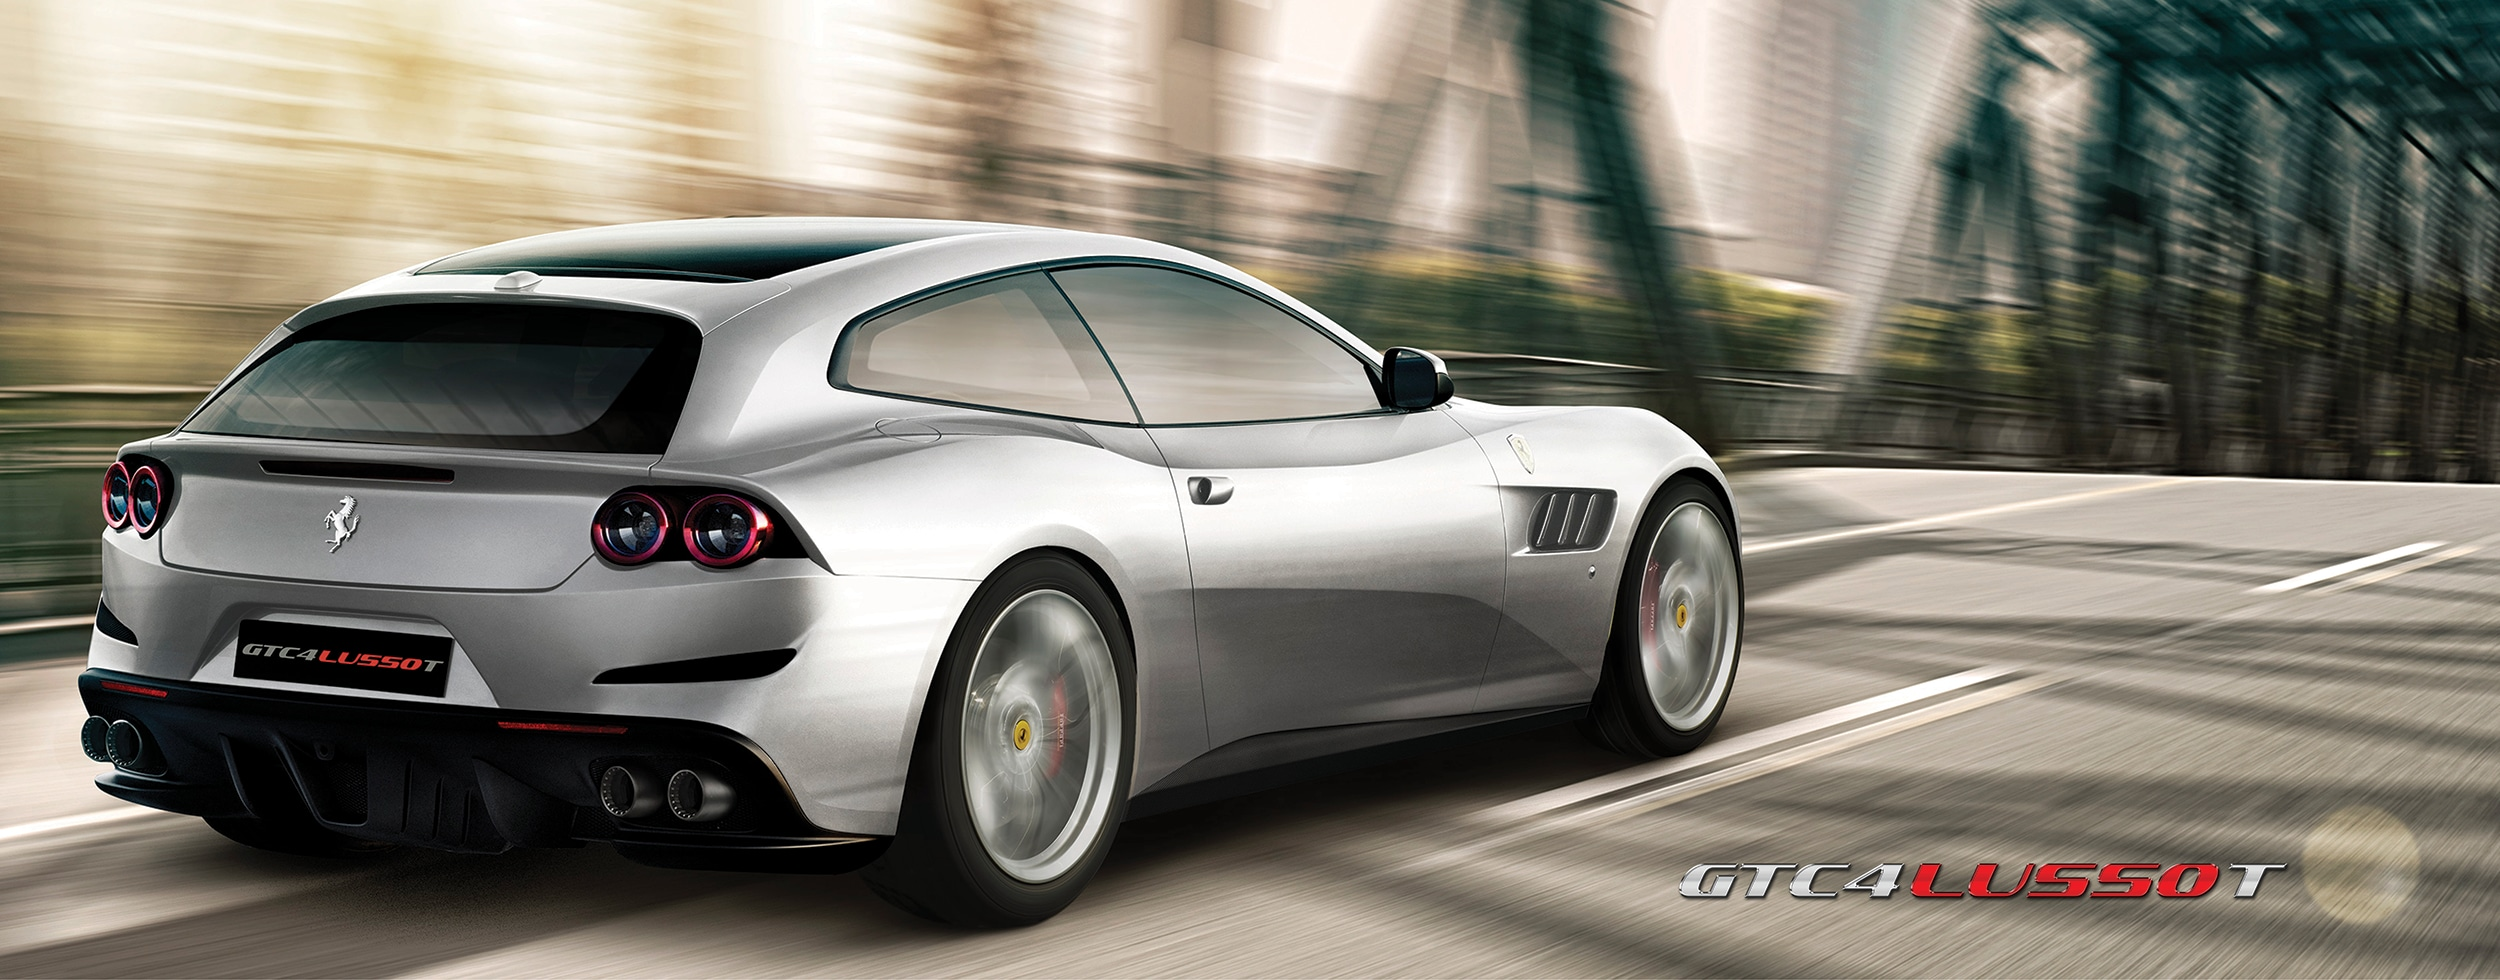 tx near used berlinetta c l for stock ferrari rent sale dallas htm a